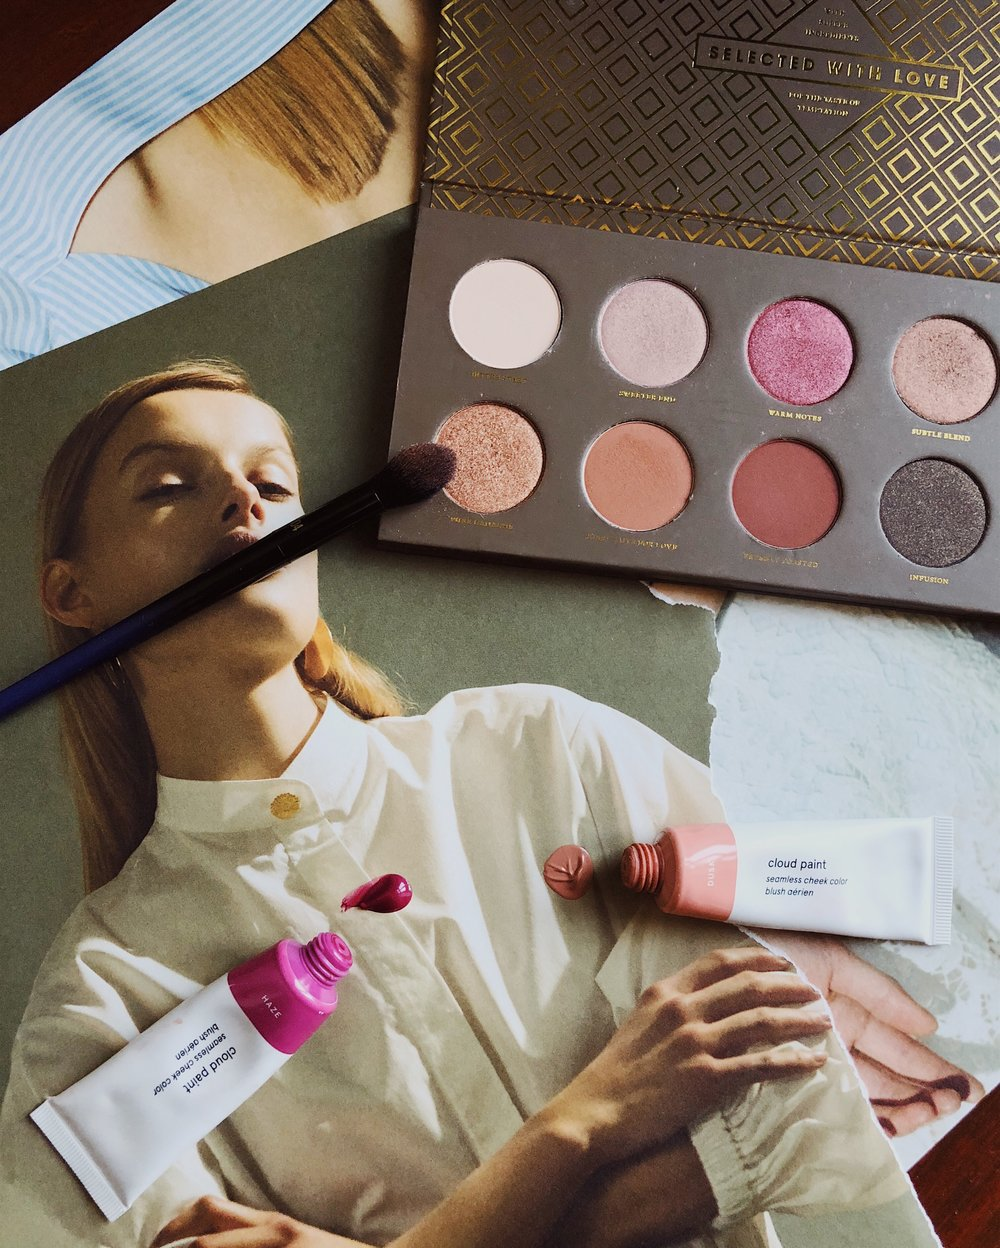 Glossier Cloud Paint Seamless Cheek Colour in Haze, Real Techniques PowderBleu Brush B04, Zoeva Cocoa Blend Eyeshadow Palette, Glossier Cloud Paint Seamless Cheek Colour in Dusk